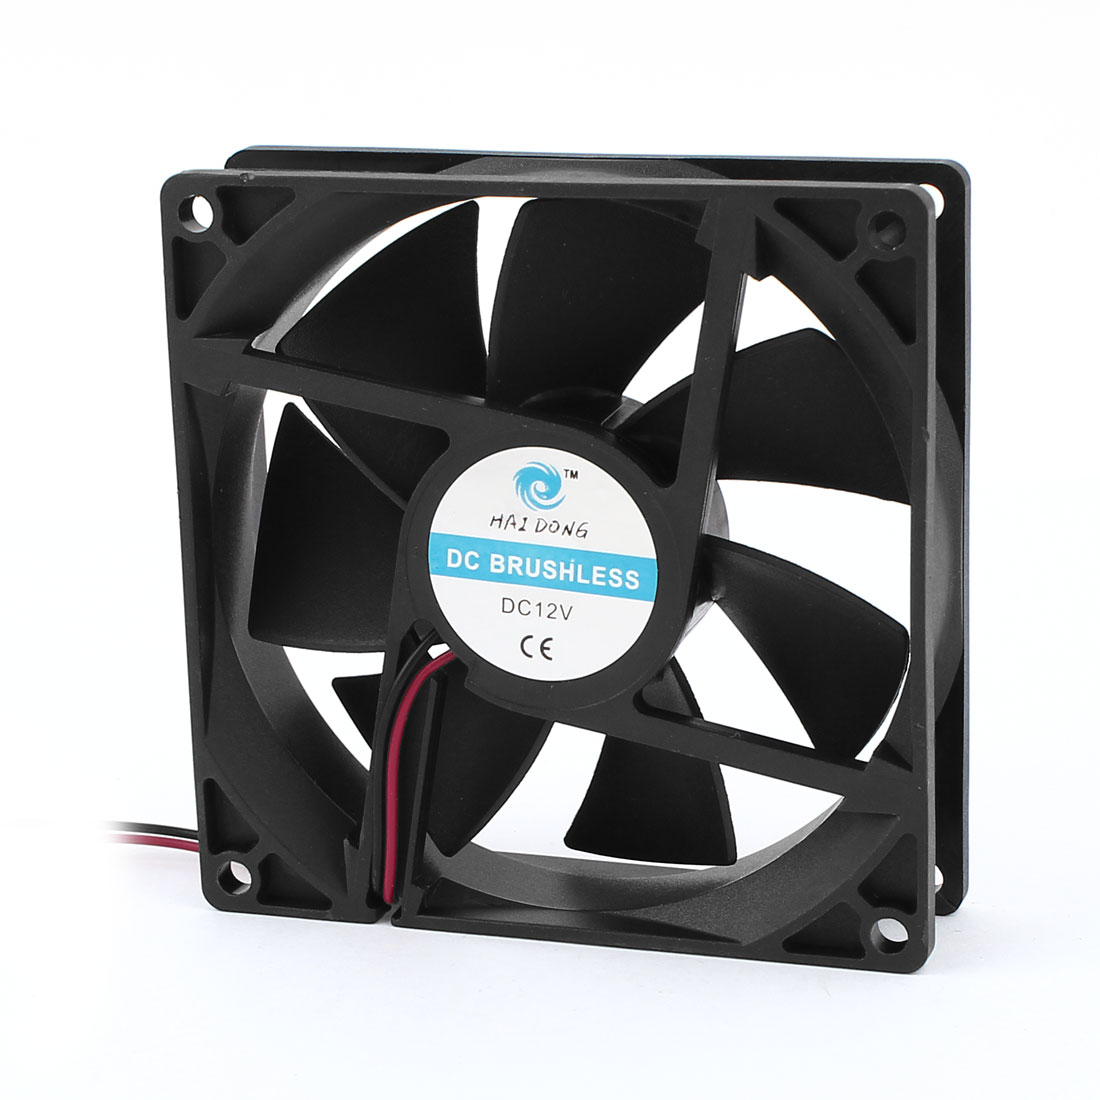 DC12V 92mmx25mm Plastic 7 Flabellums Radiator Case Cooling Fan w Dustproof Mesh